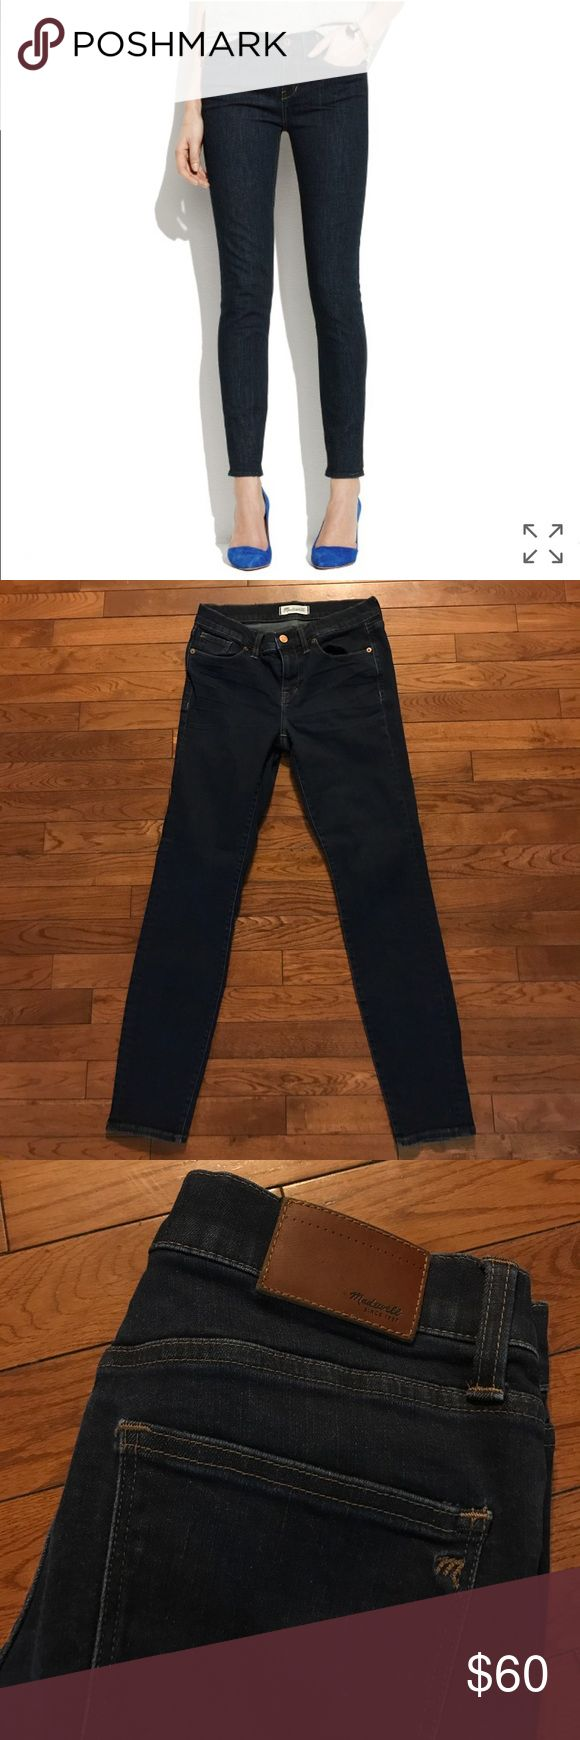 • MADEWELL • skinny skinny jeans Gently worn Madewell skinny skinny jeans. Size 28. Dark wash. They do have some stretch to them. Gently worn but in great condition. No stains, rips or fading! Remember to bundle & save 15%! 💕 Feel free to make an offer! Madewell Jeans Skinny